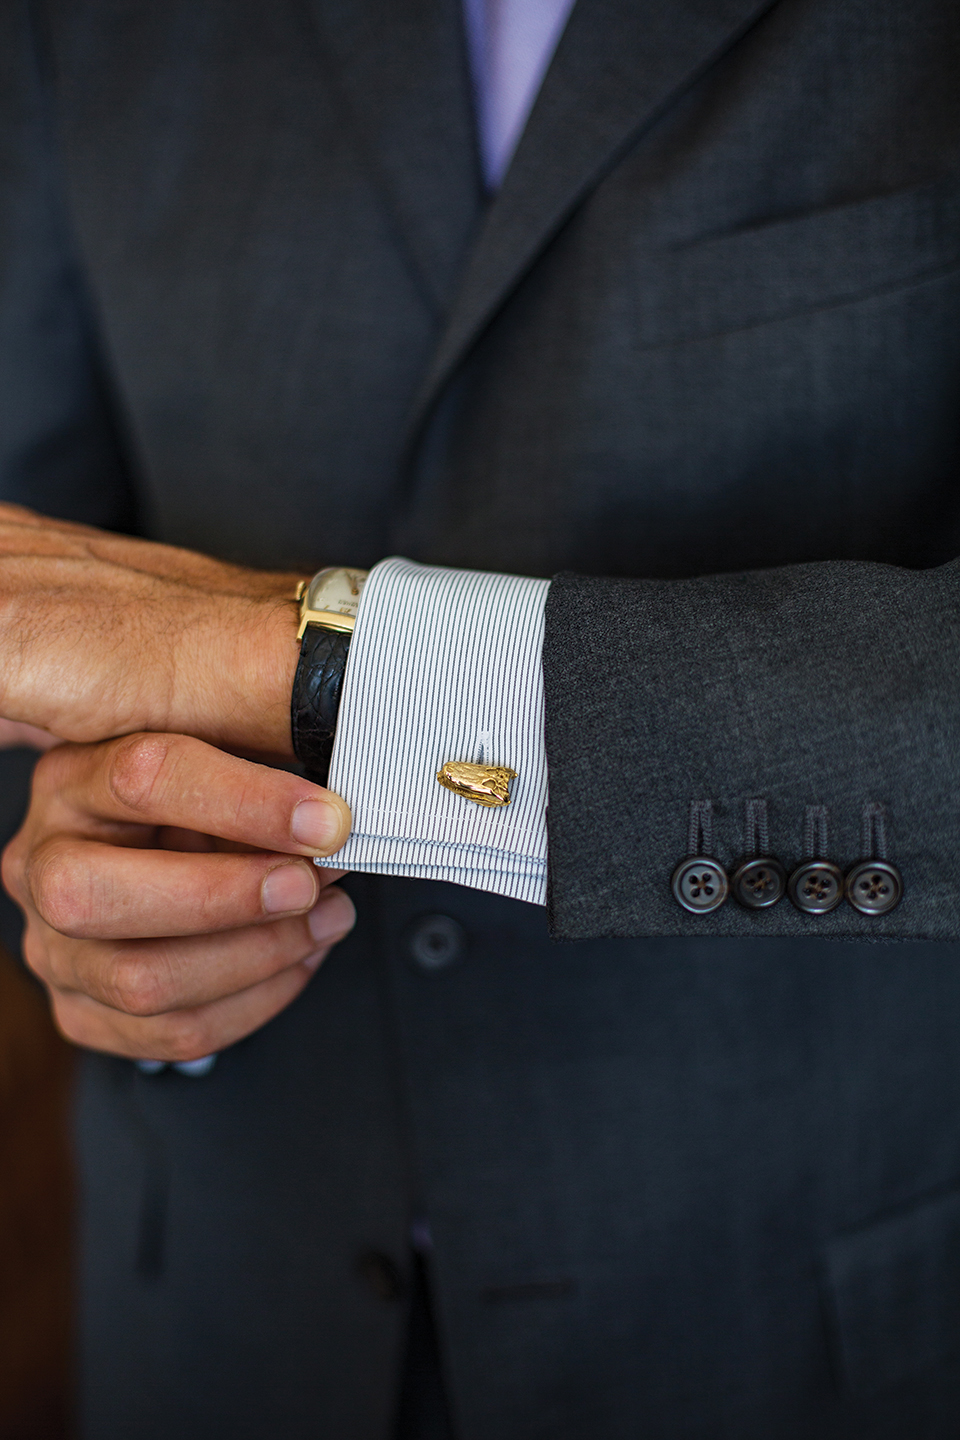 Gold-plated gator cufflinks from Alligrove; Photography by Alligrove